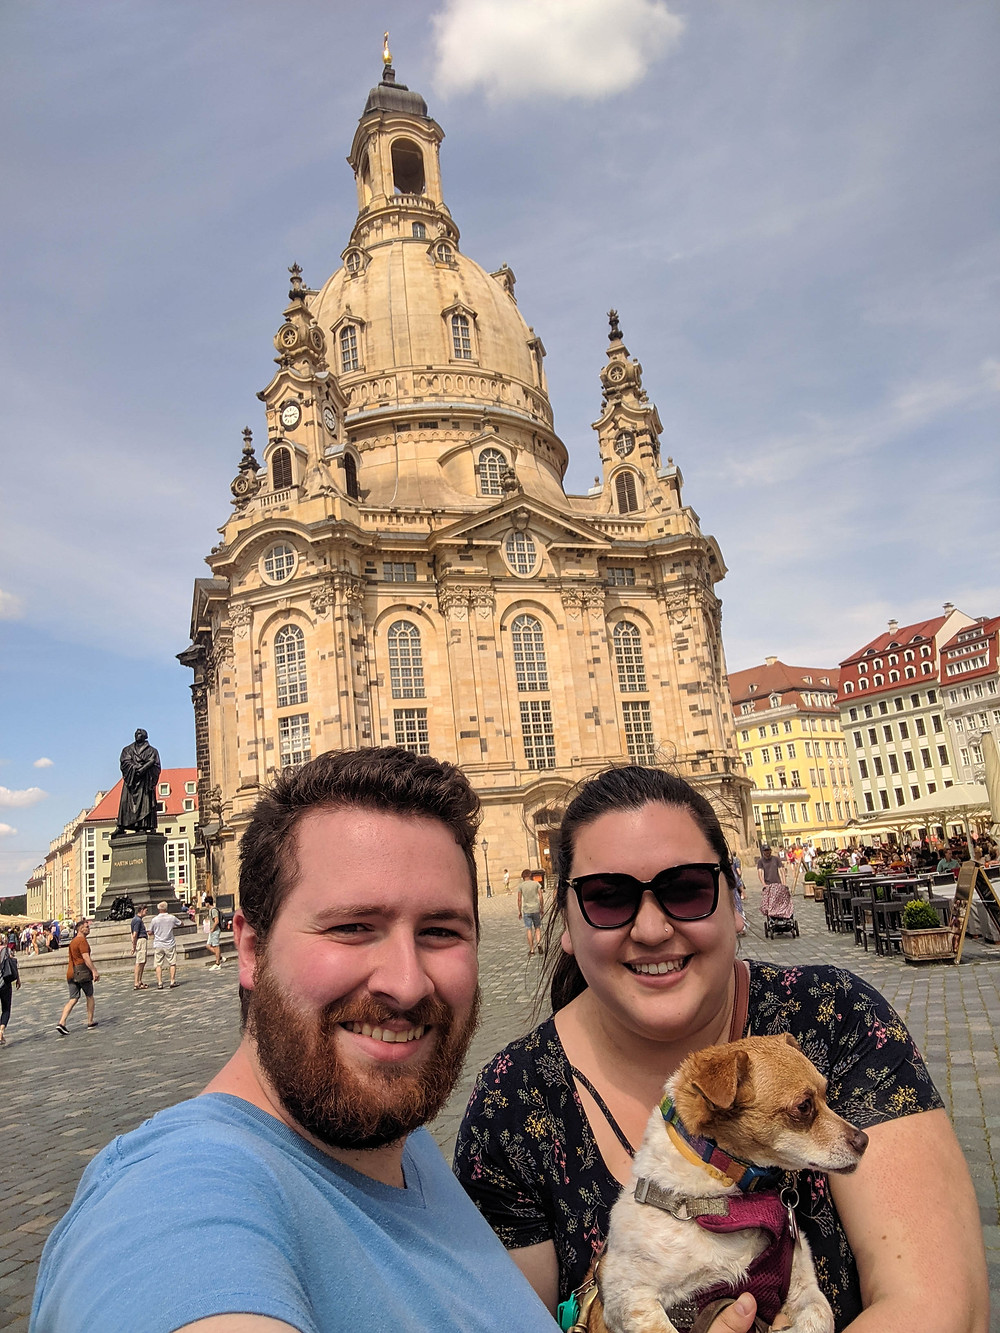 A close up of a young couple and their dog in front of a beautiful cathedral in Germany